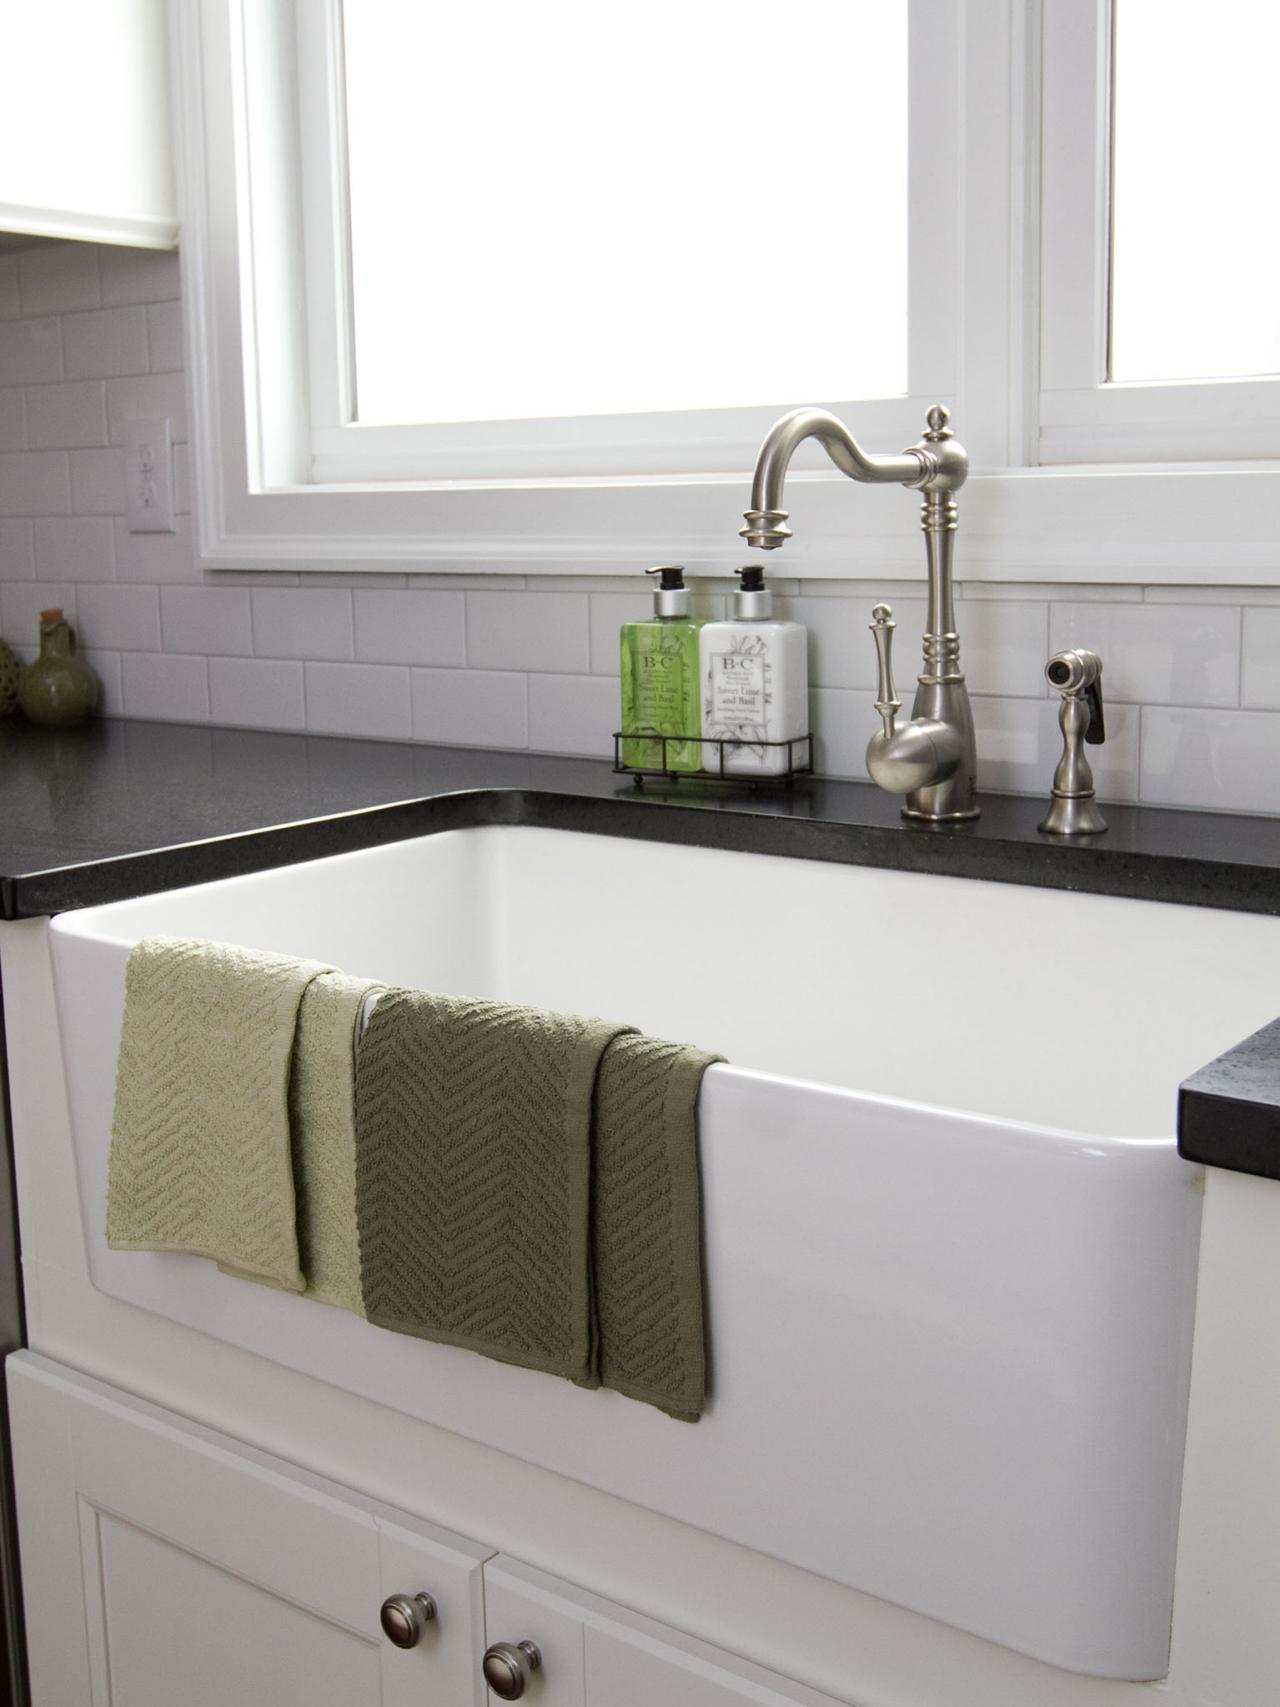 good Farmer Kitchen Sinks #8: Black Farm Sinks For Kitchens Black Soapstone Farm Sink Design .